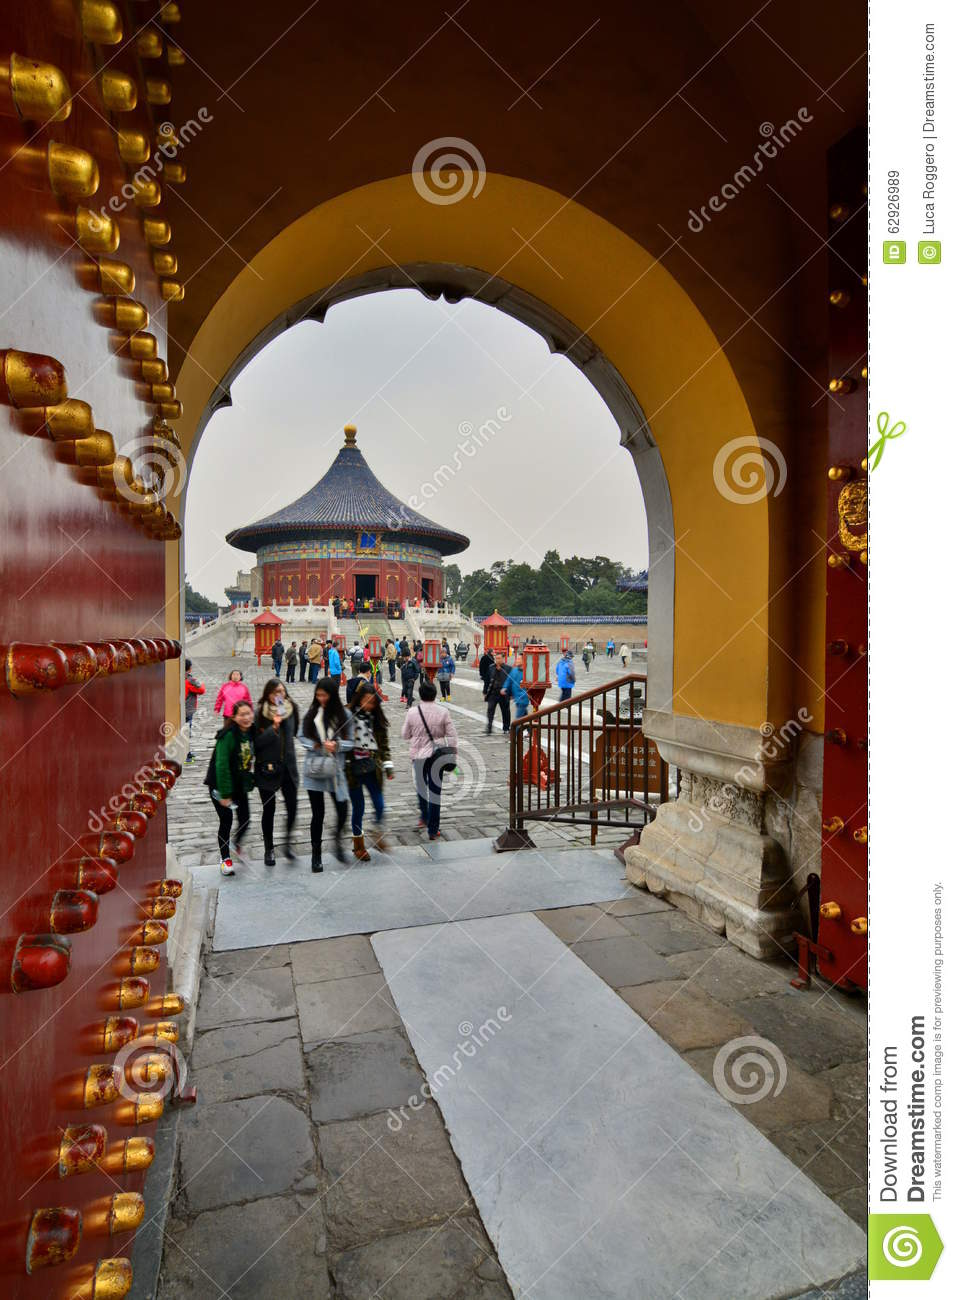 Gate To The Imperial Vault Of Heaven. The Temple Of Heaven.